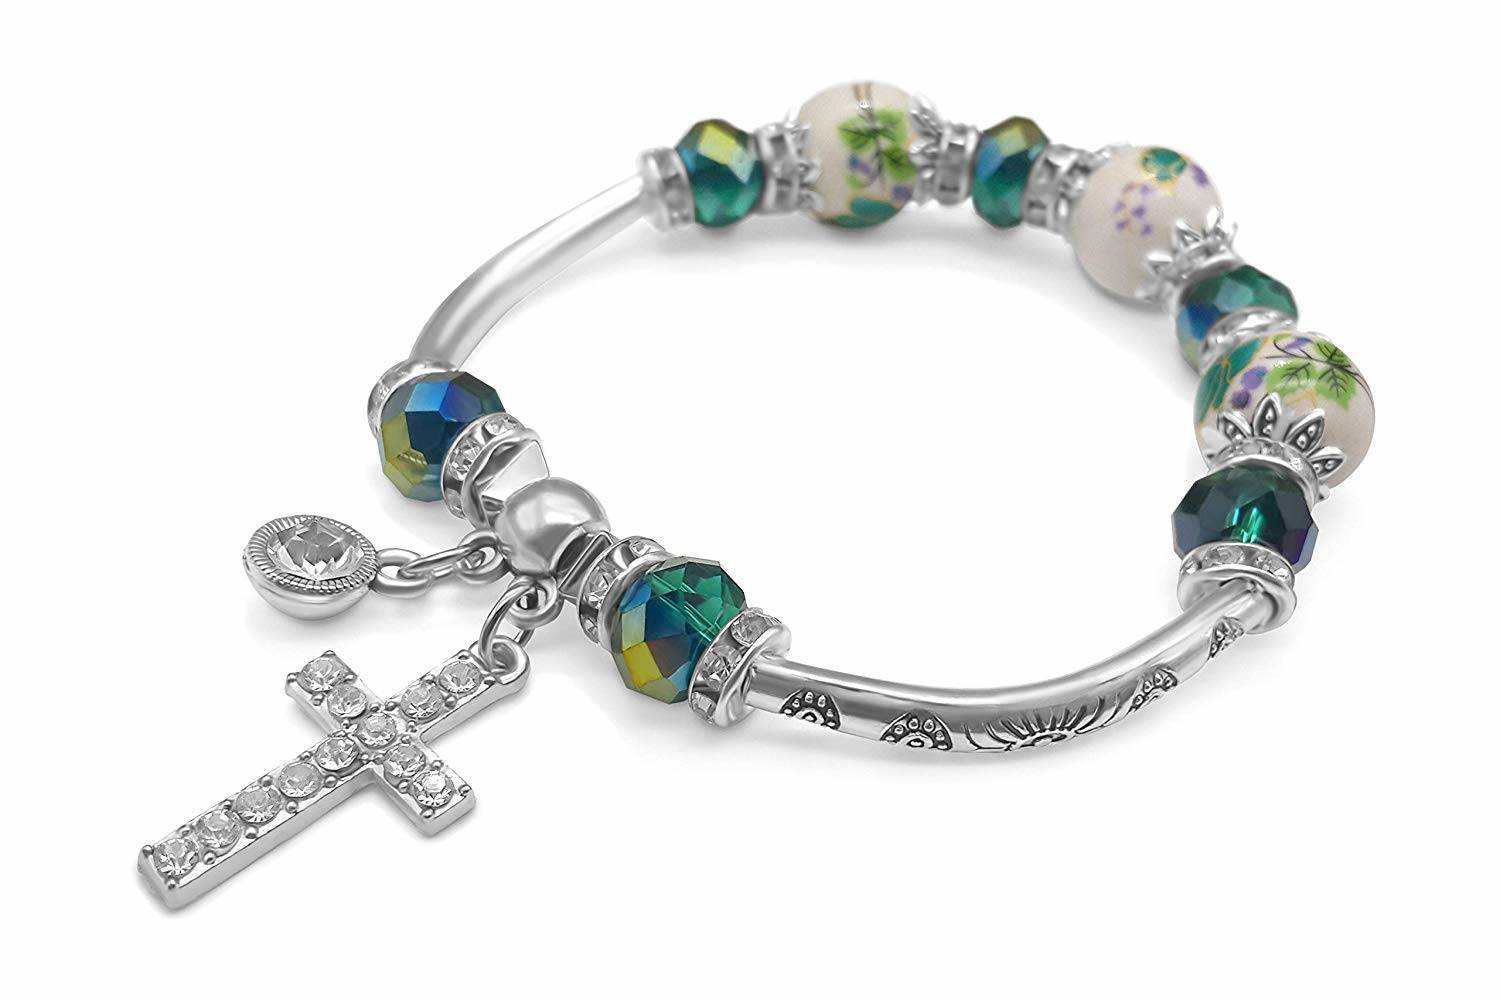 Cross Bracelet Silver Handmade Bangle Green Crystal Beads